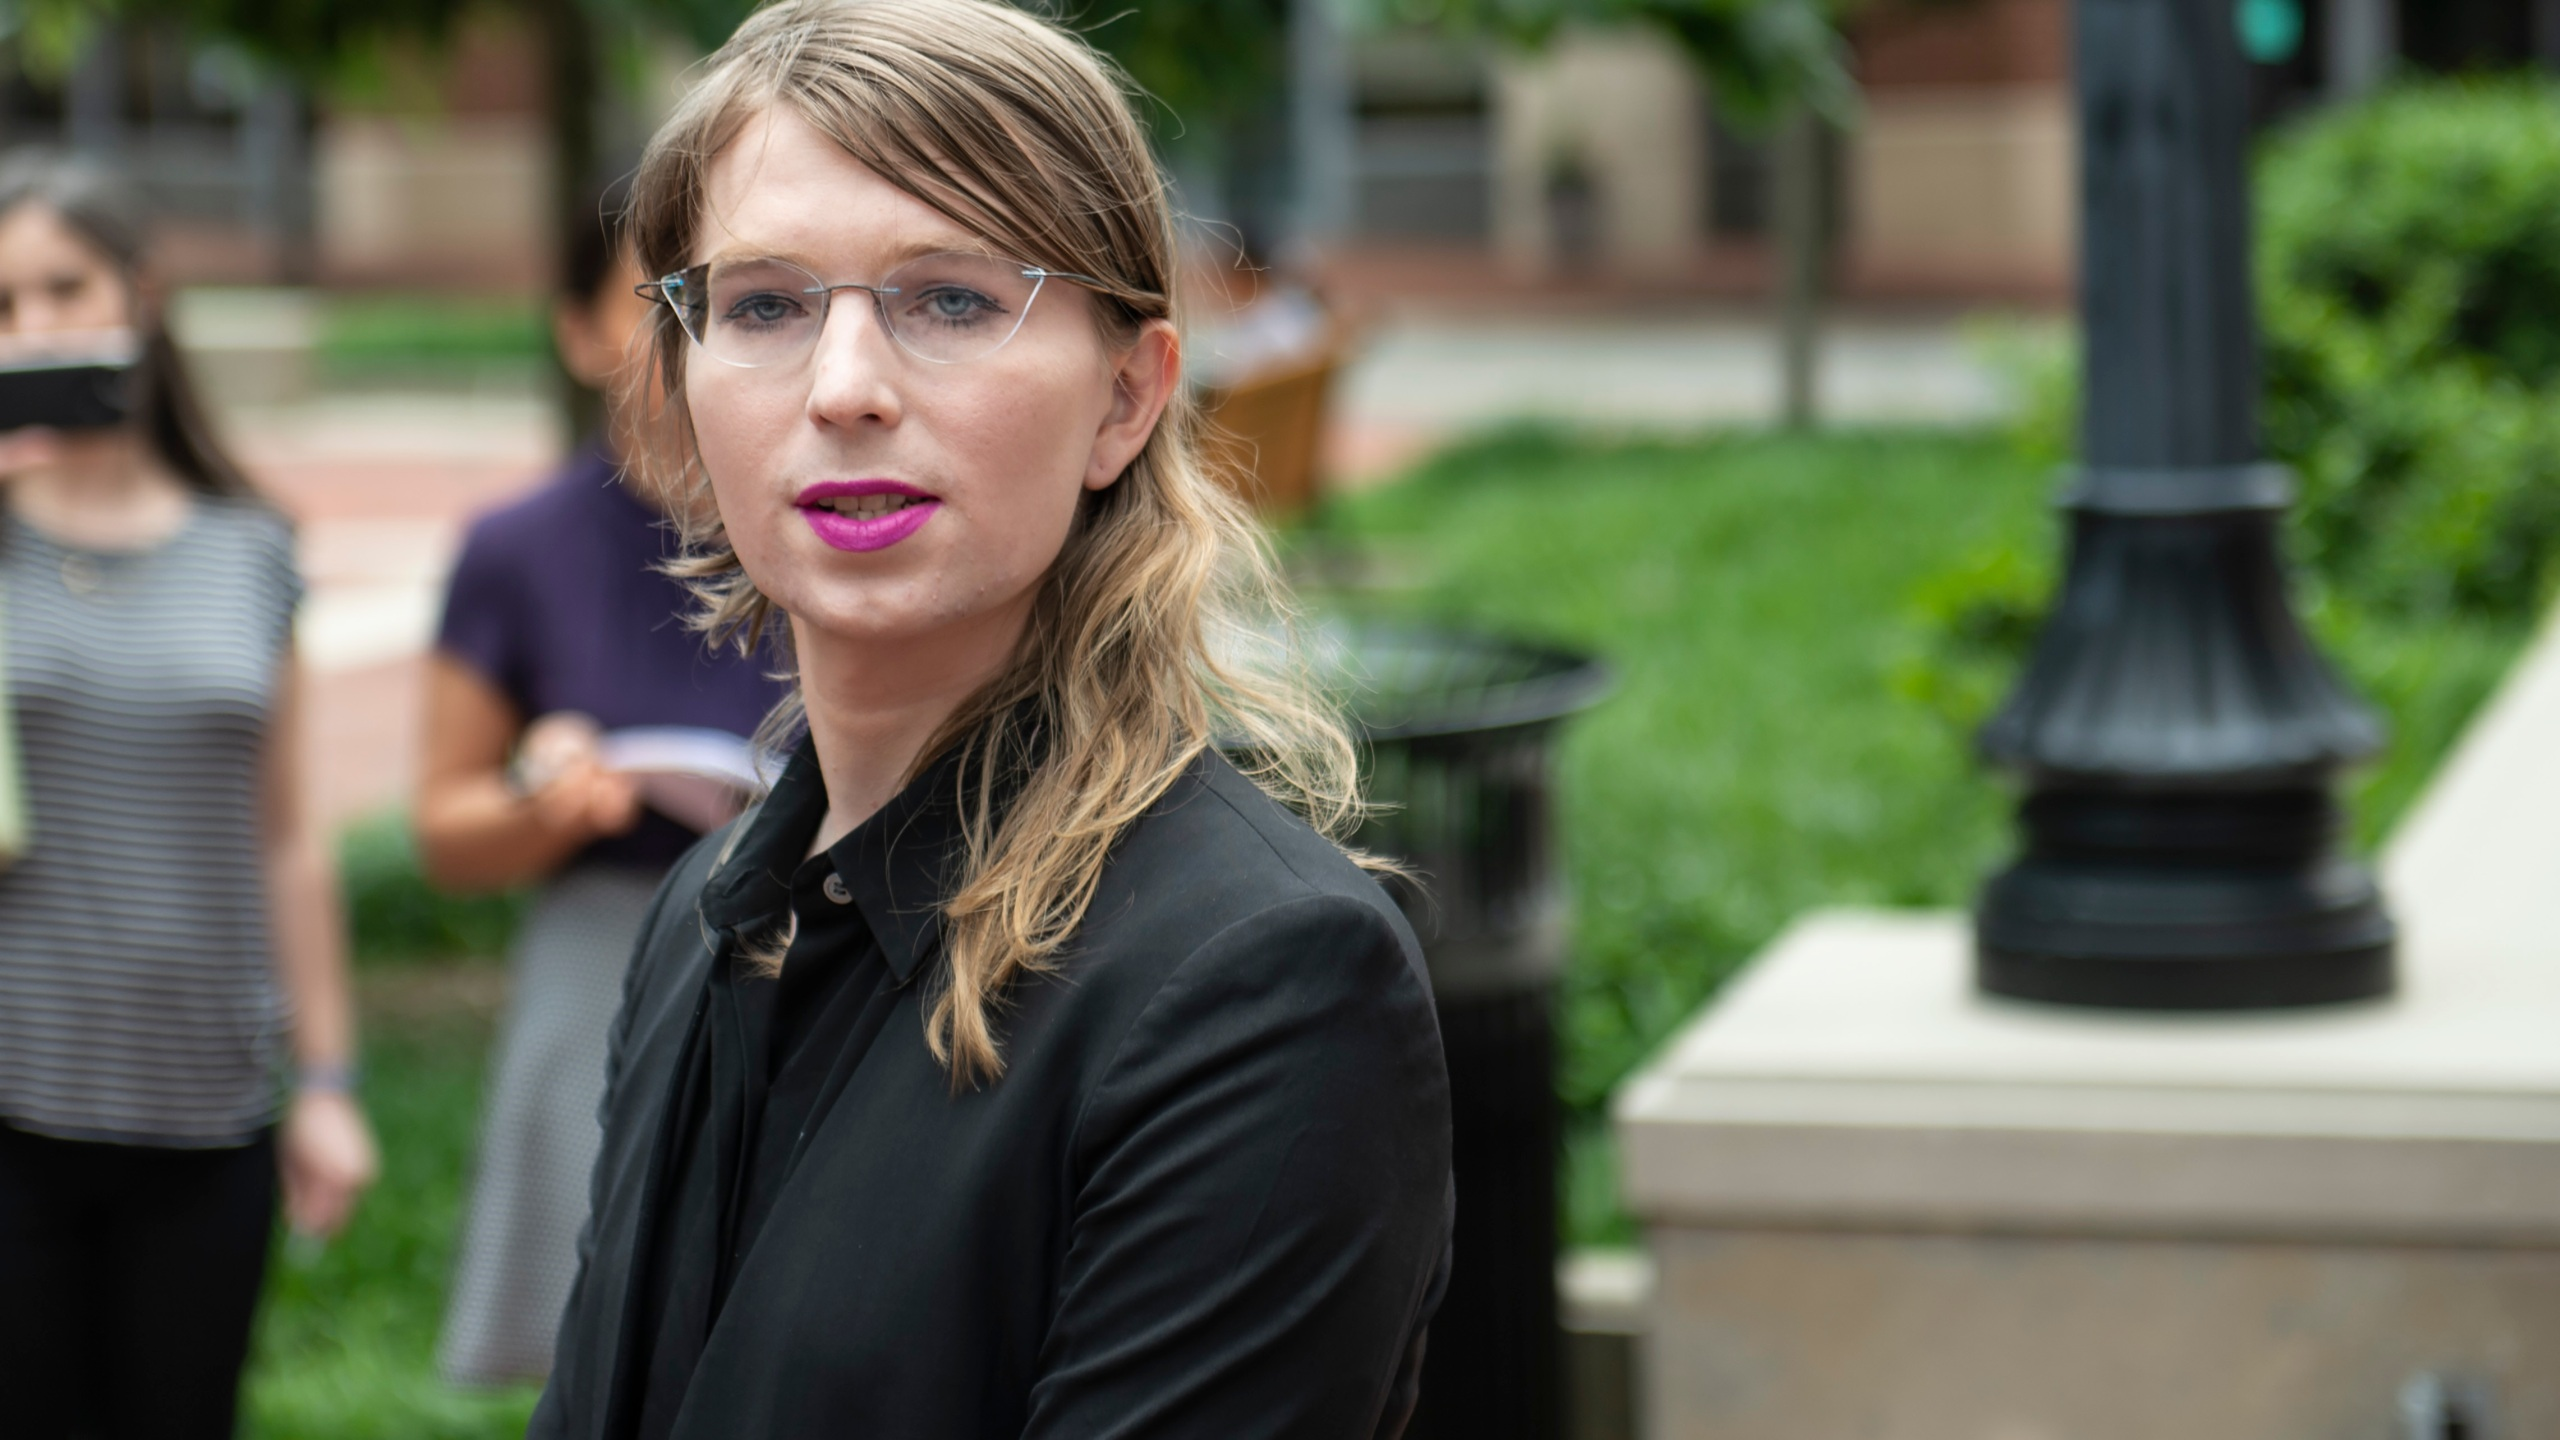 Former military intelligence analyst Chelsea Manning speaks to press ahead of a grand jury appearance about WikiLeaks in Alexandria, Virginia, on May 16, 2019. (Credit: Eric Baradat / AFP / Getty Images)